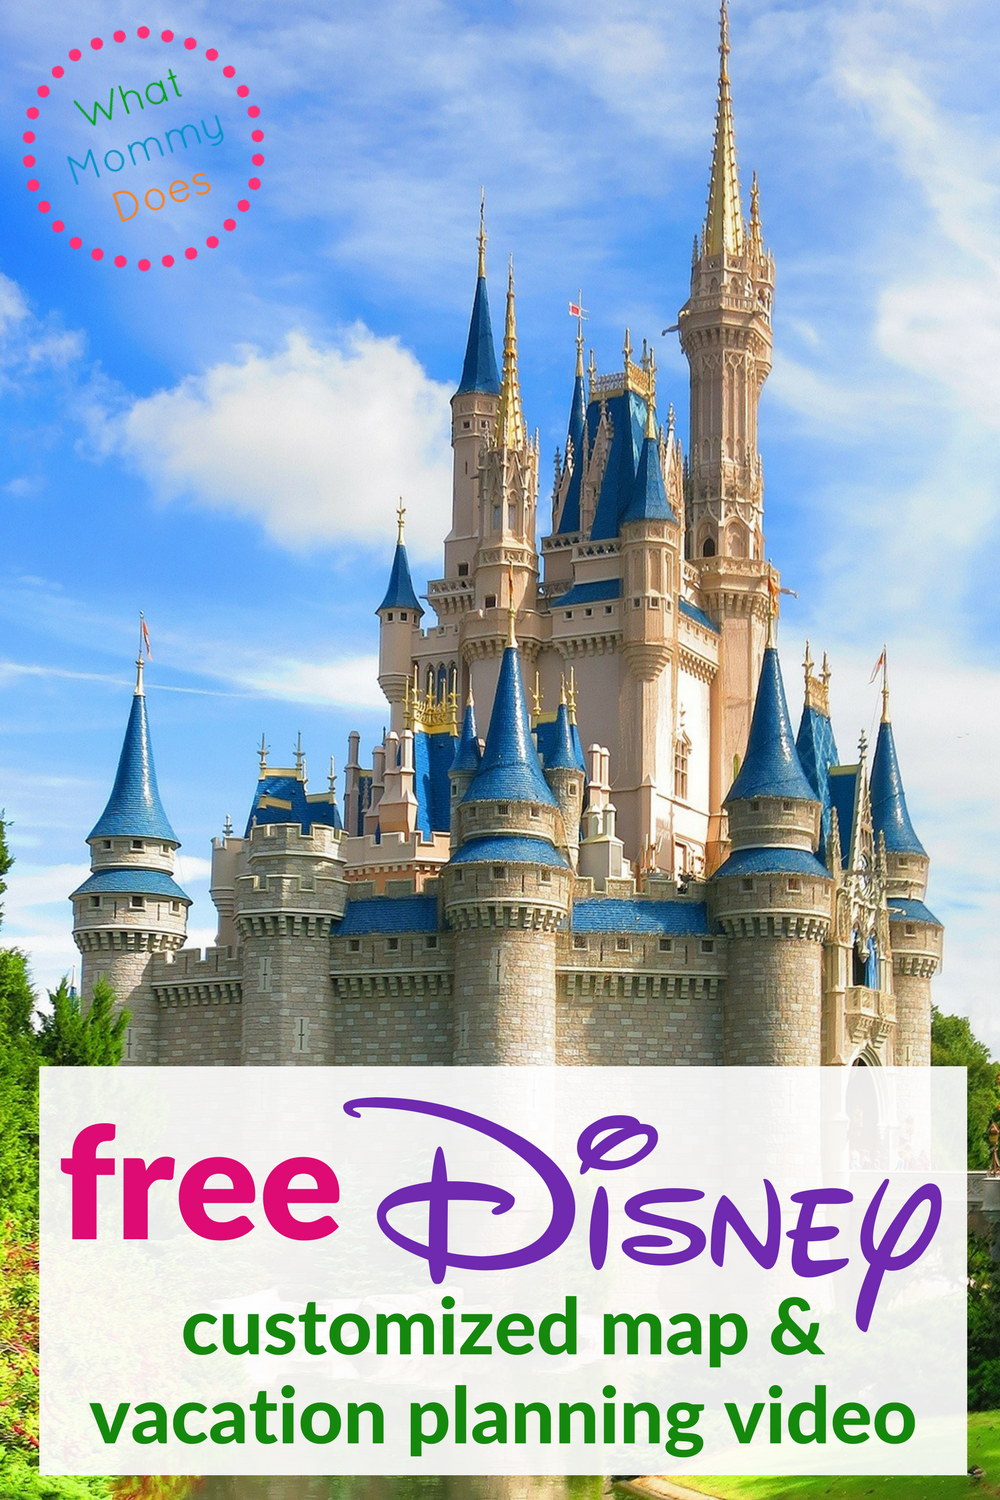 Free Disney Map & Planning Video - Plan your next Disney Trip with this customized map and vacation planning video. They are FREE!!